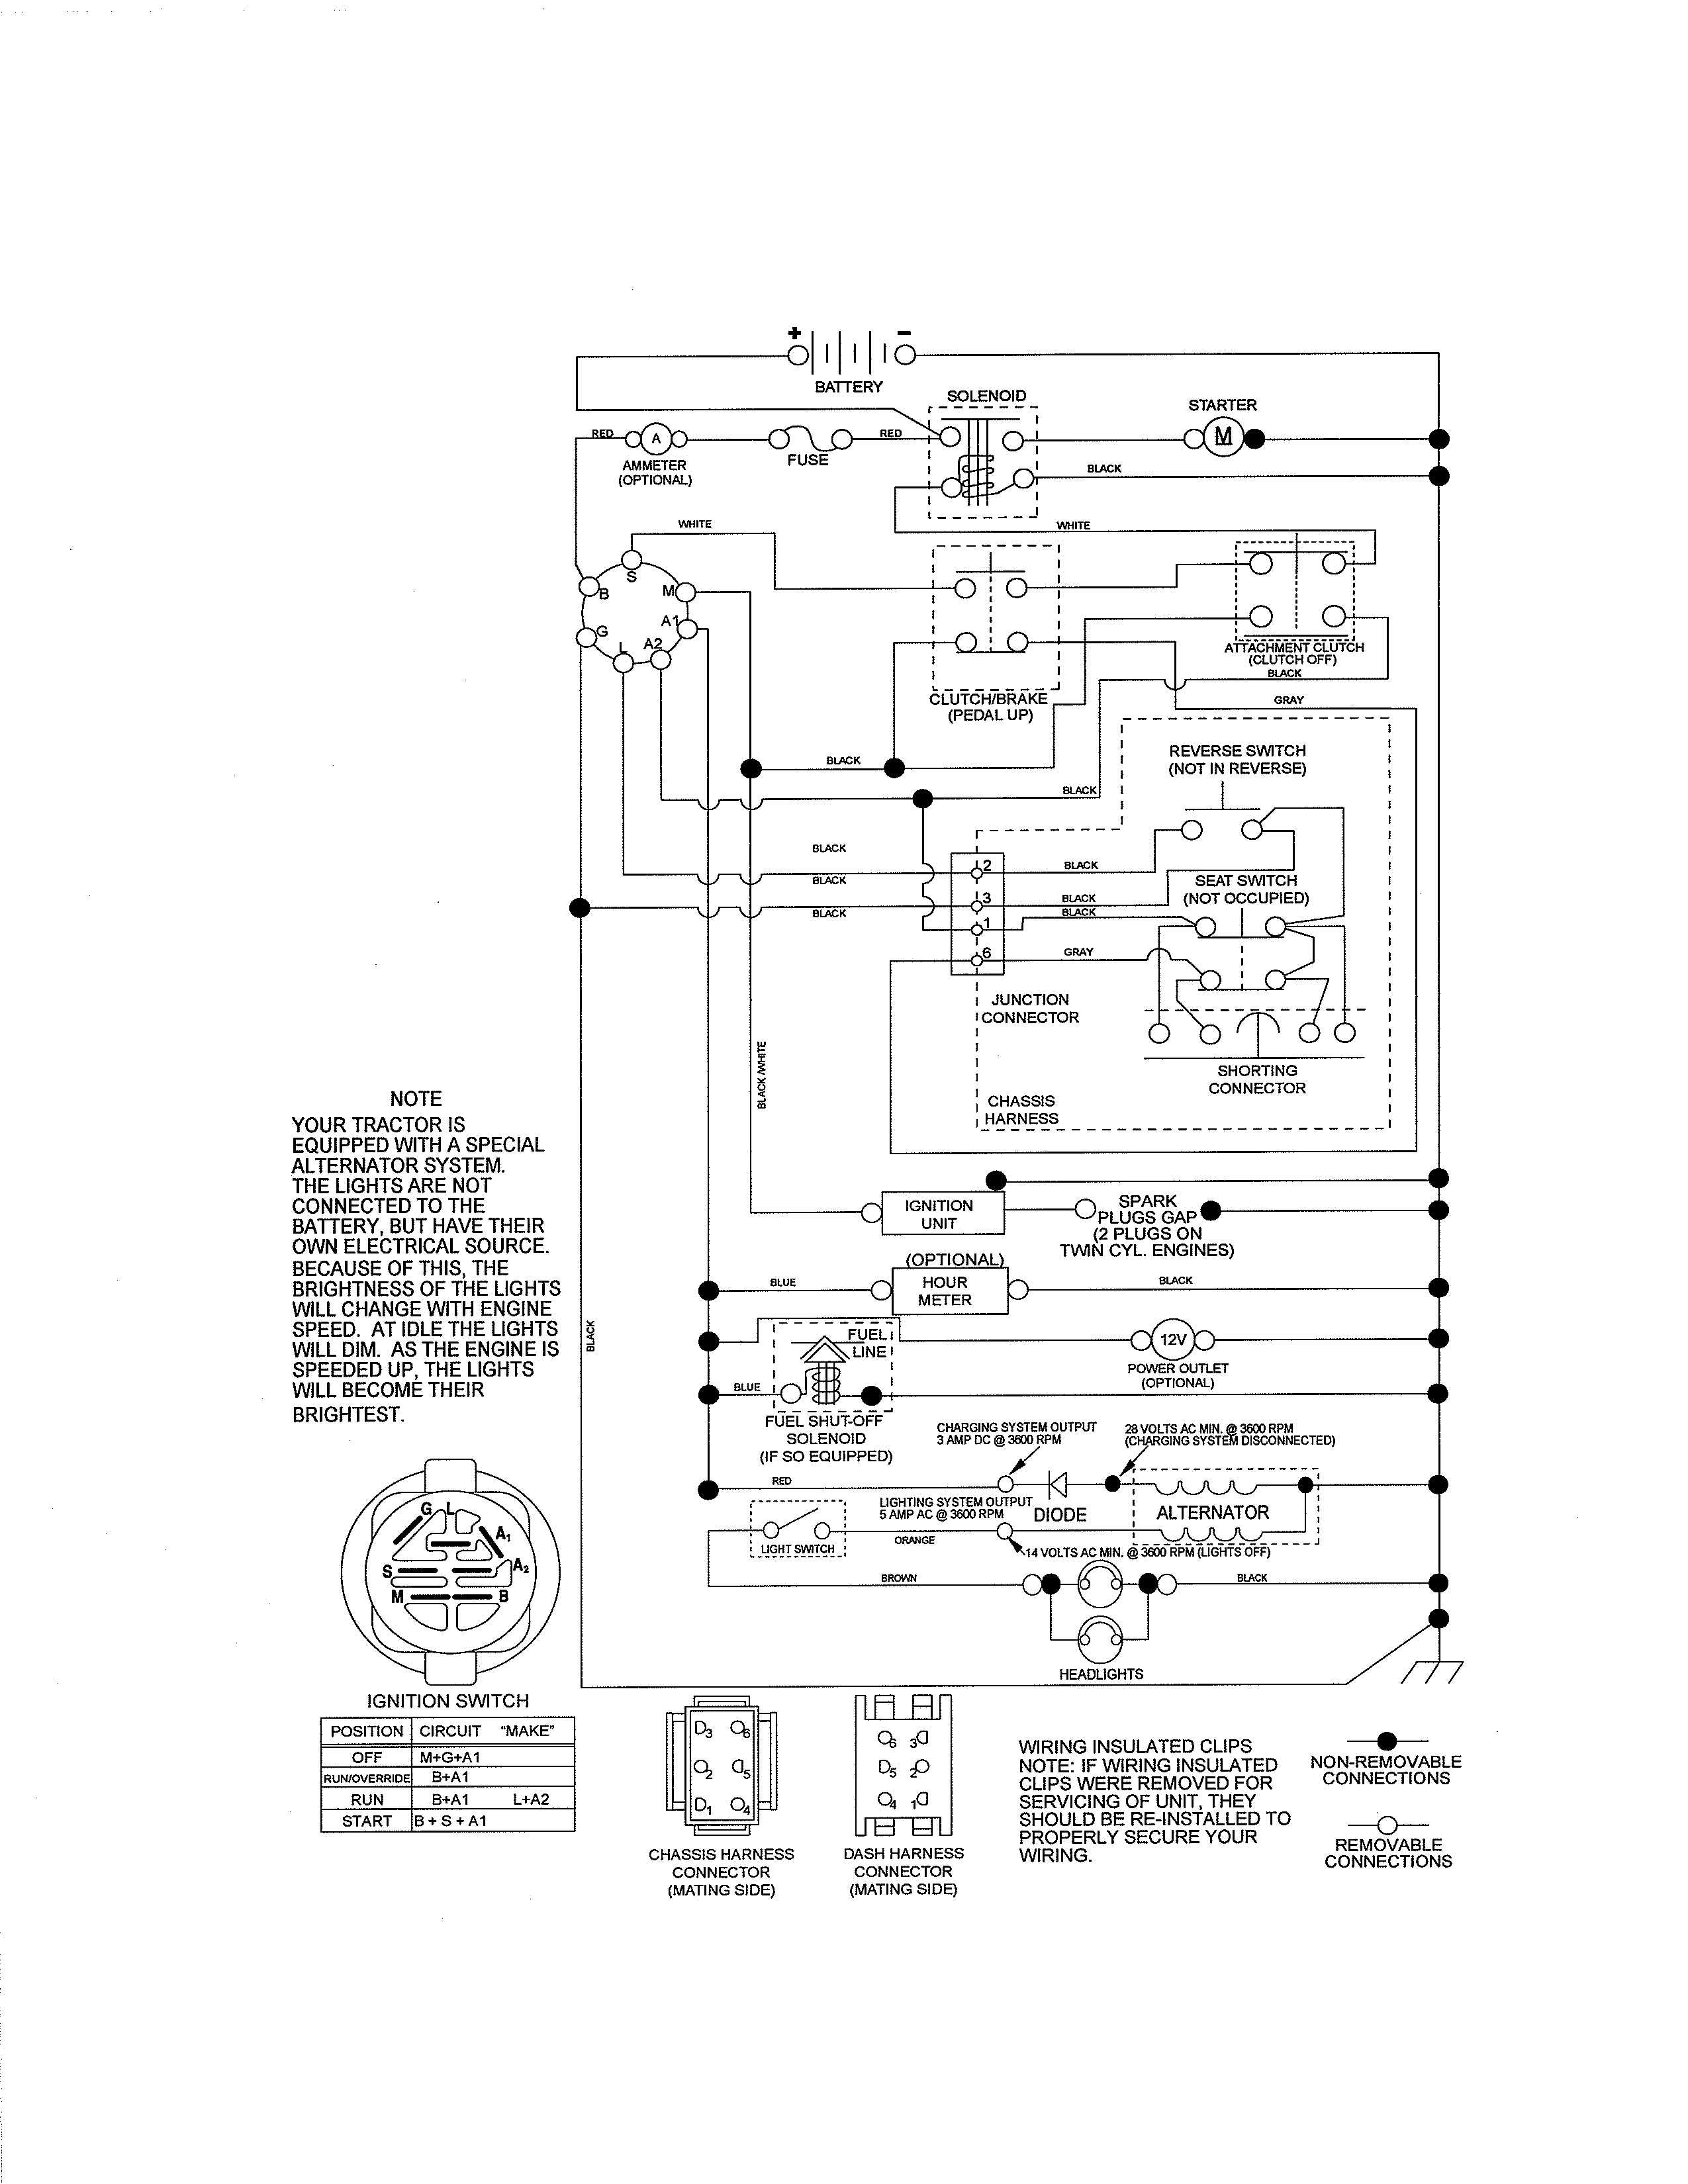 Craftsman Lt1000 Wiring Diagram from exatin.info